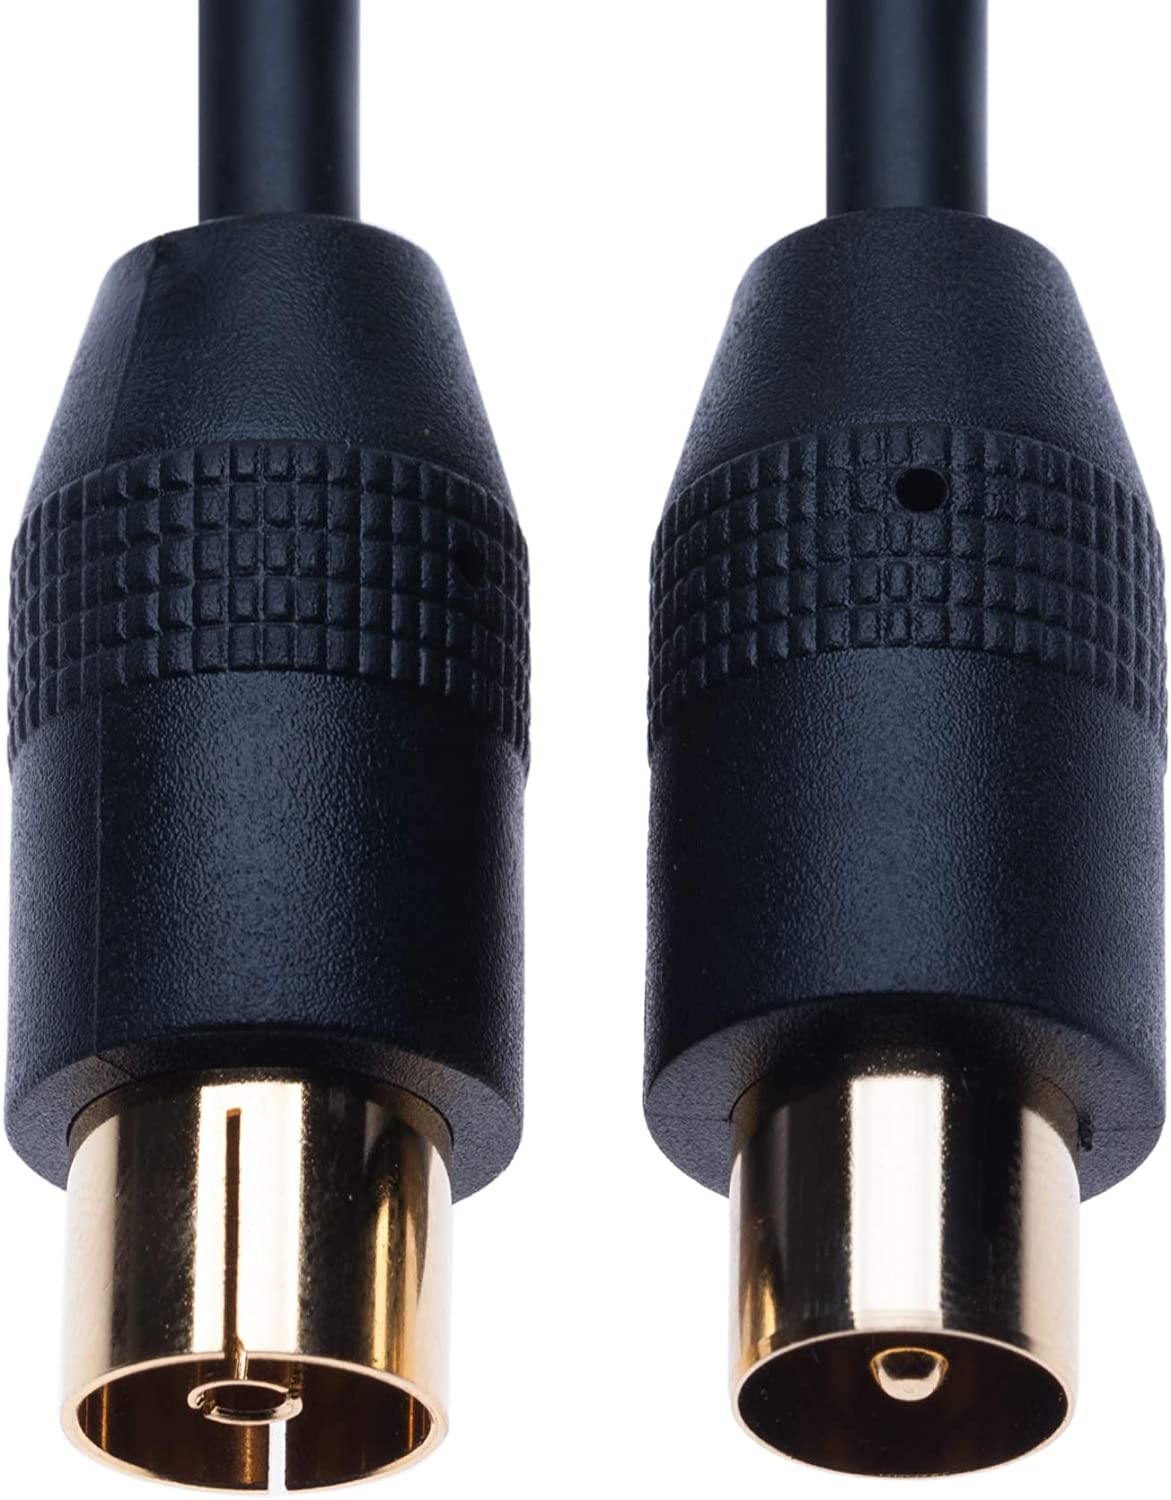 Gold M-F Connector TDS Wow! Black AT/&T Xfinity RF Coaxial Cable TV Aerial Lead 3m Coax Plug Male to Female Antenna Socket Extension for Freeview DVD VCR Connect to Television COX